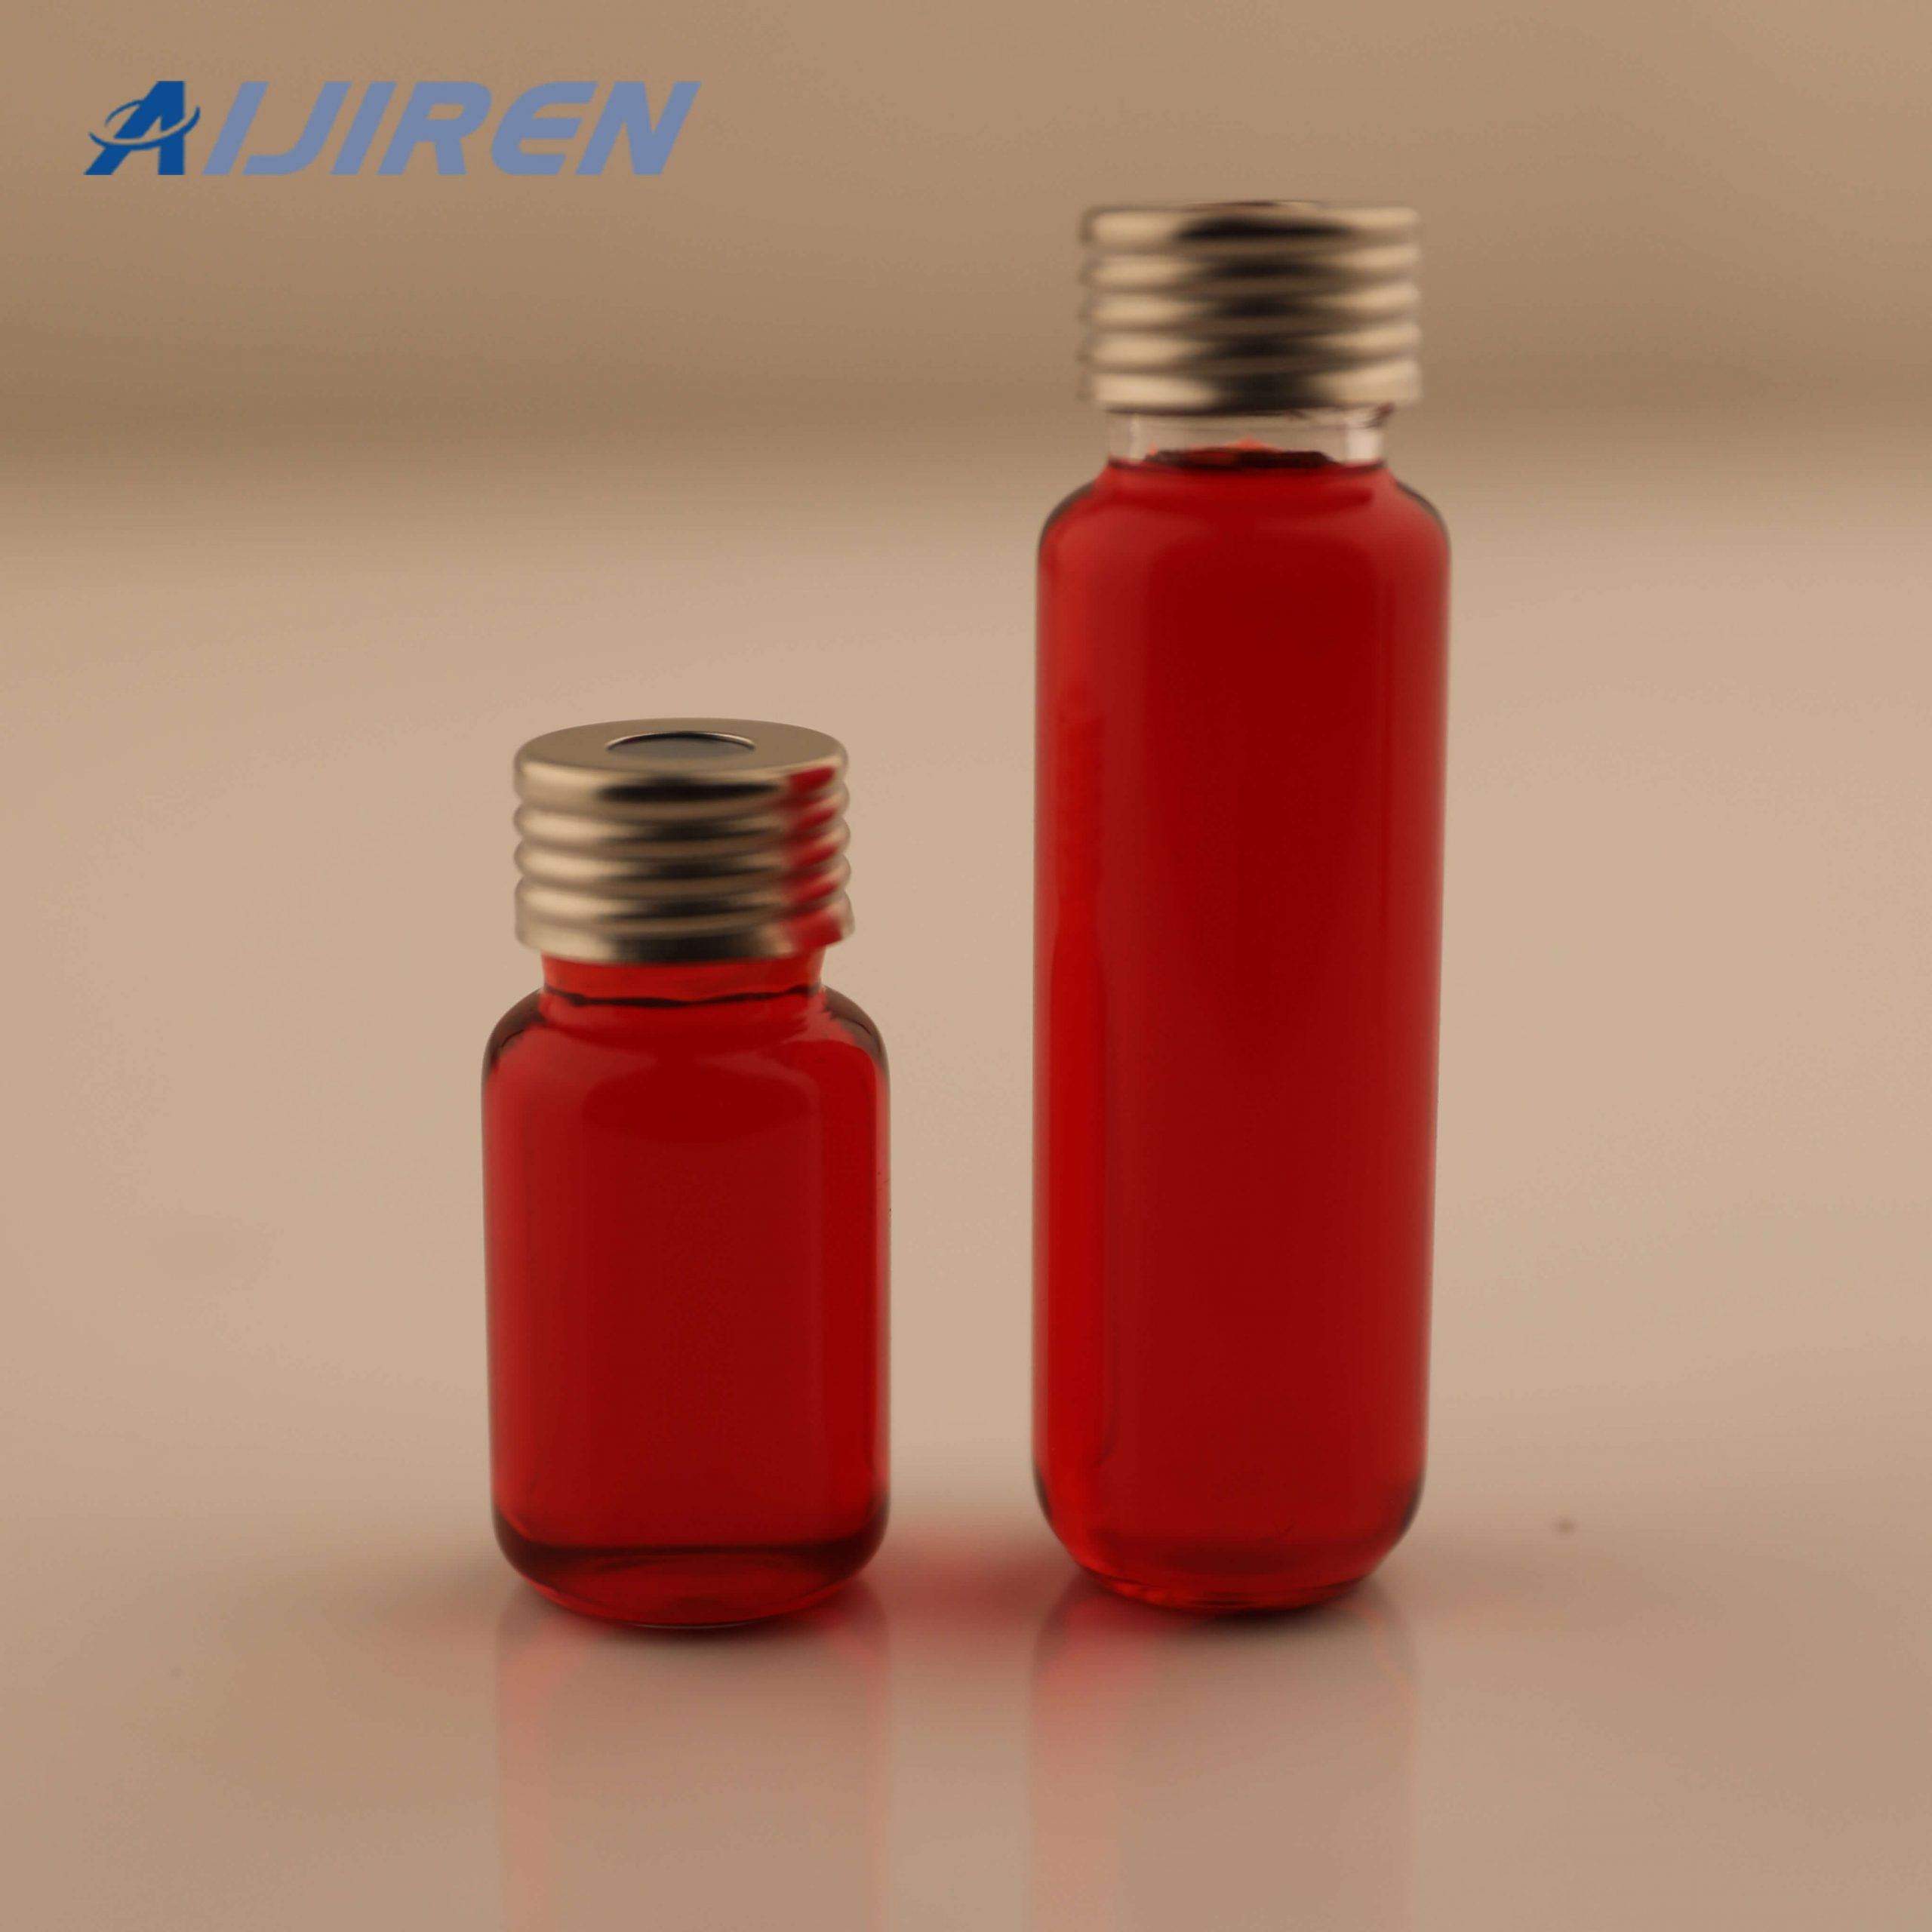 18mm Screw Top Clear Glass GC Vials for Agilent